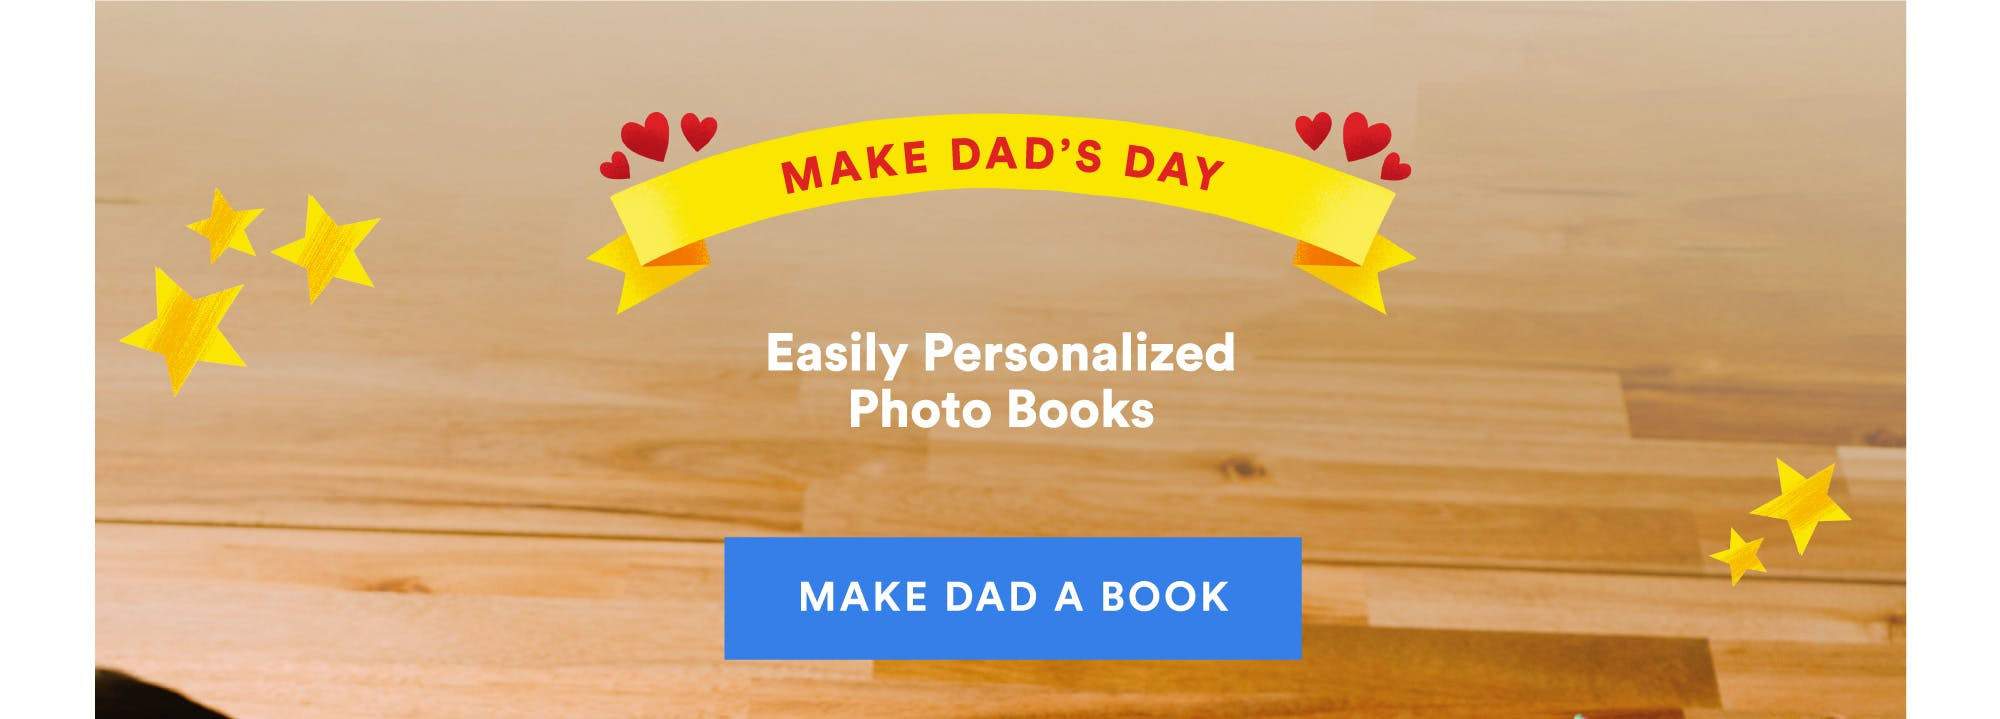 Father's Day Photo Book: The Best Gift For Dad